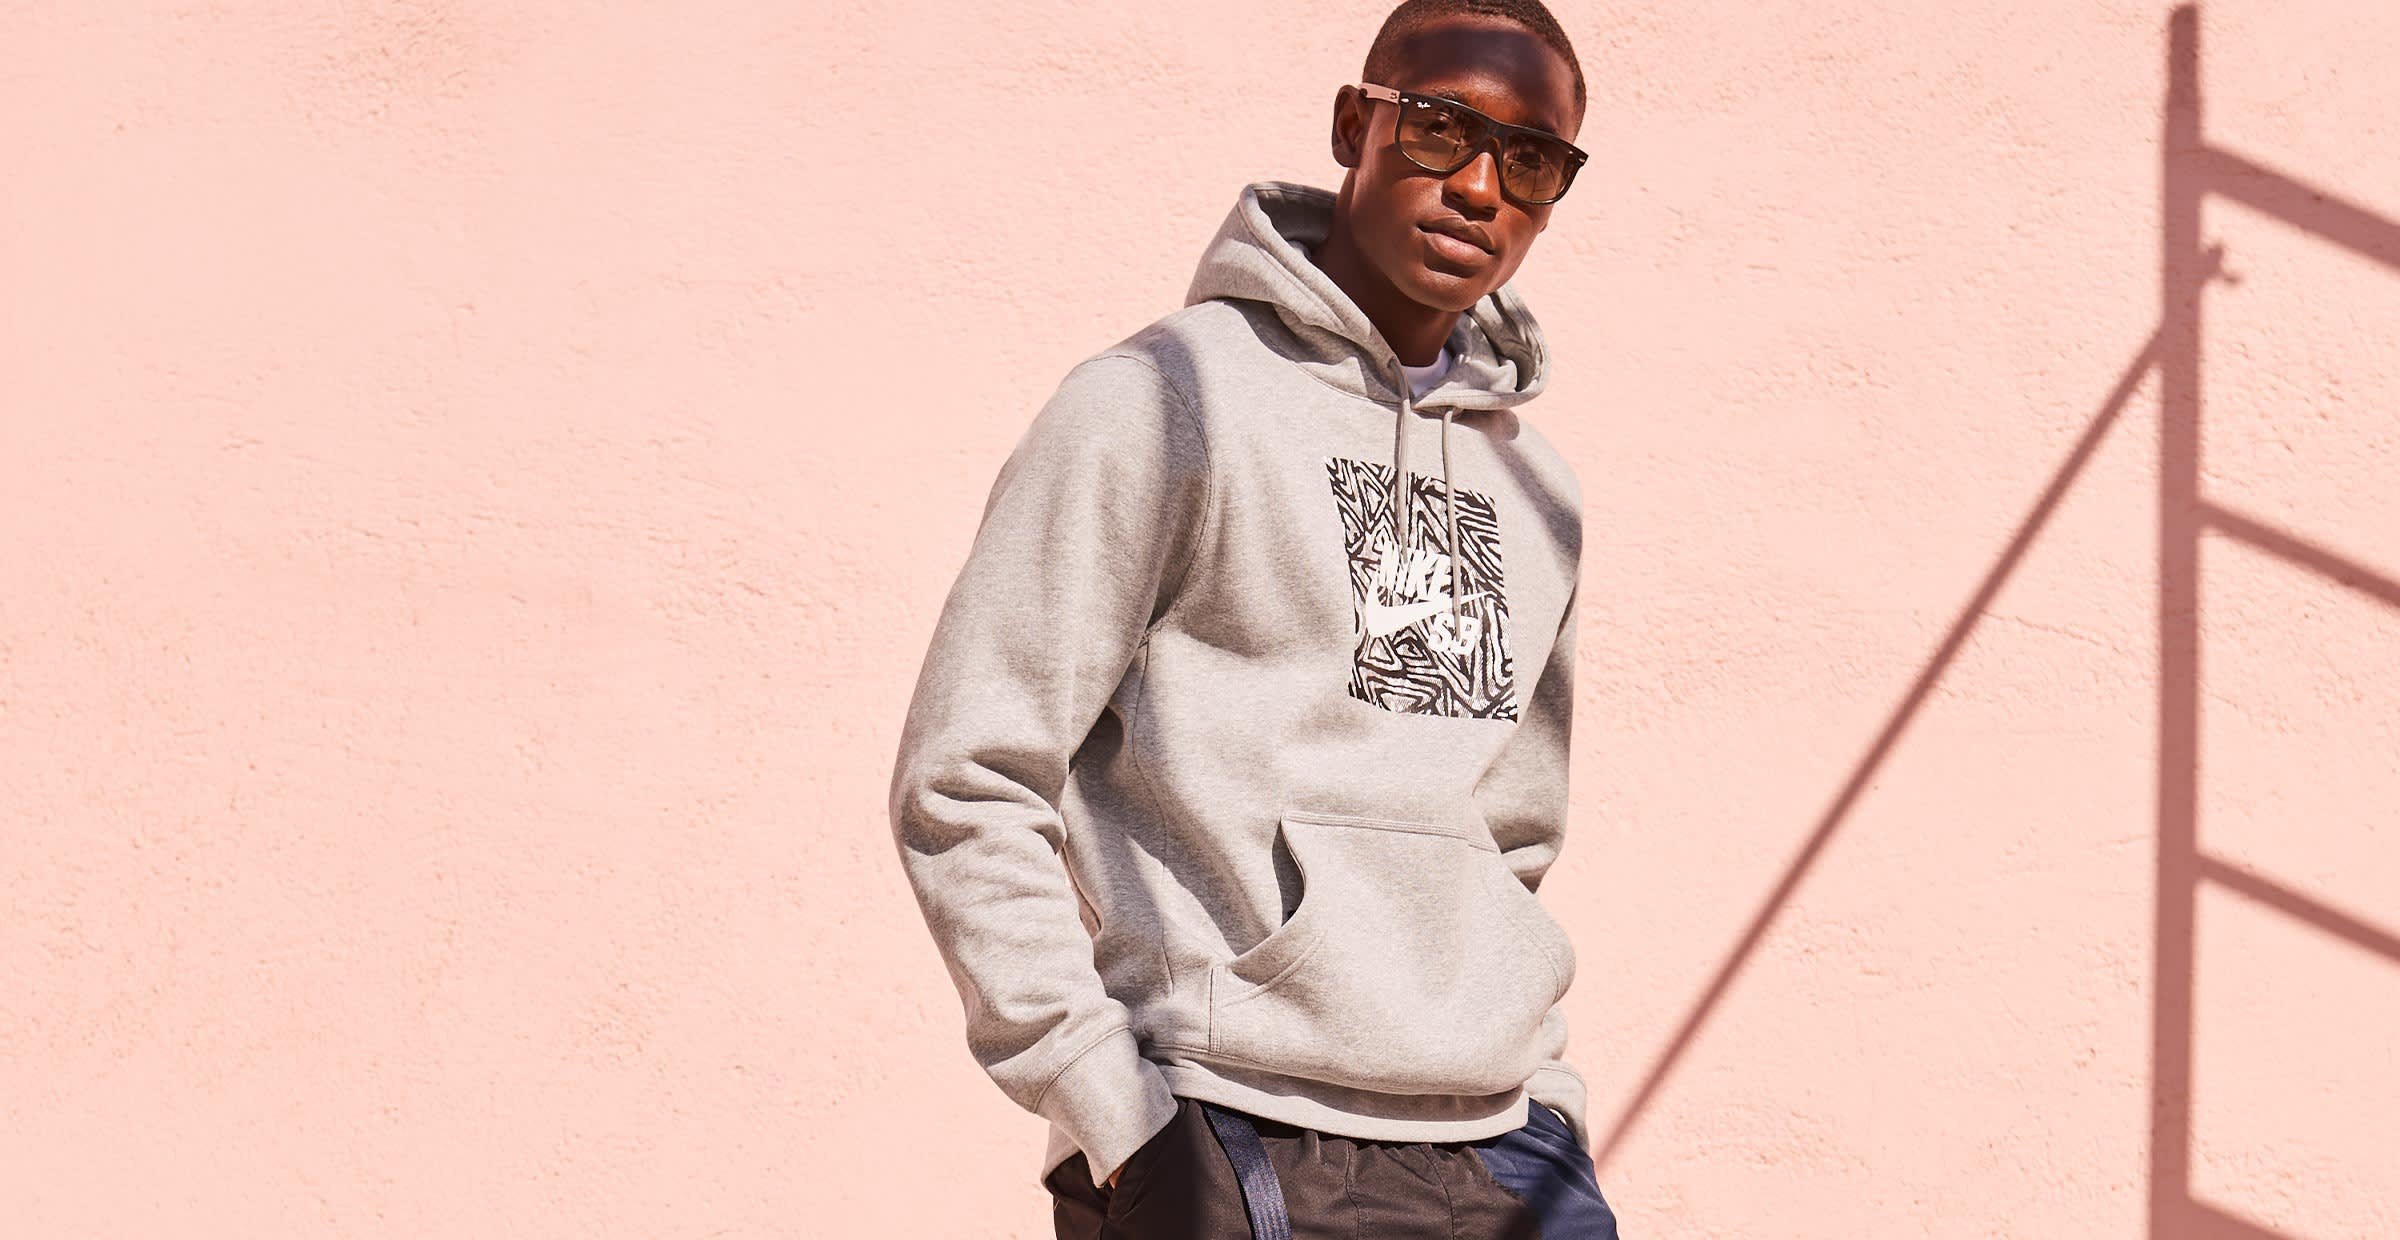 Man in a gray hooded sweat shirt